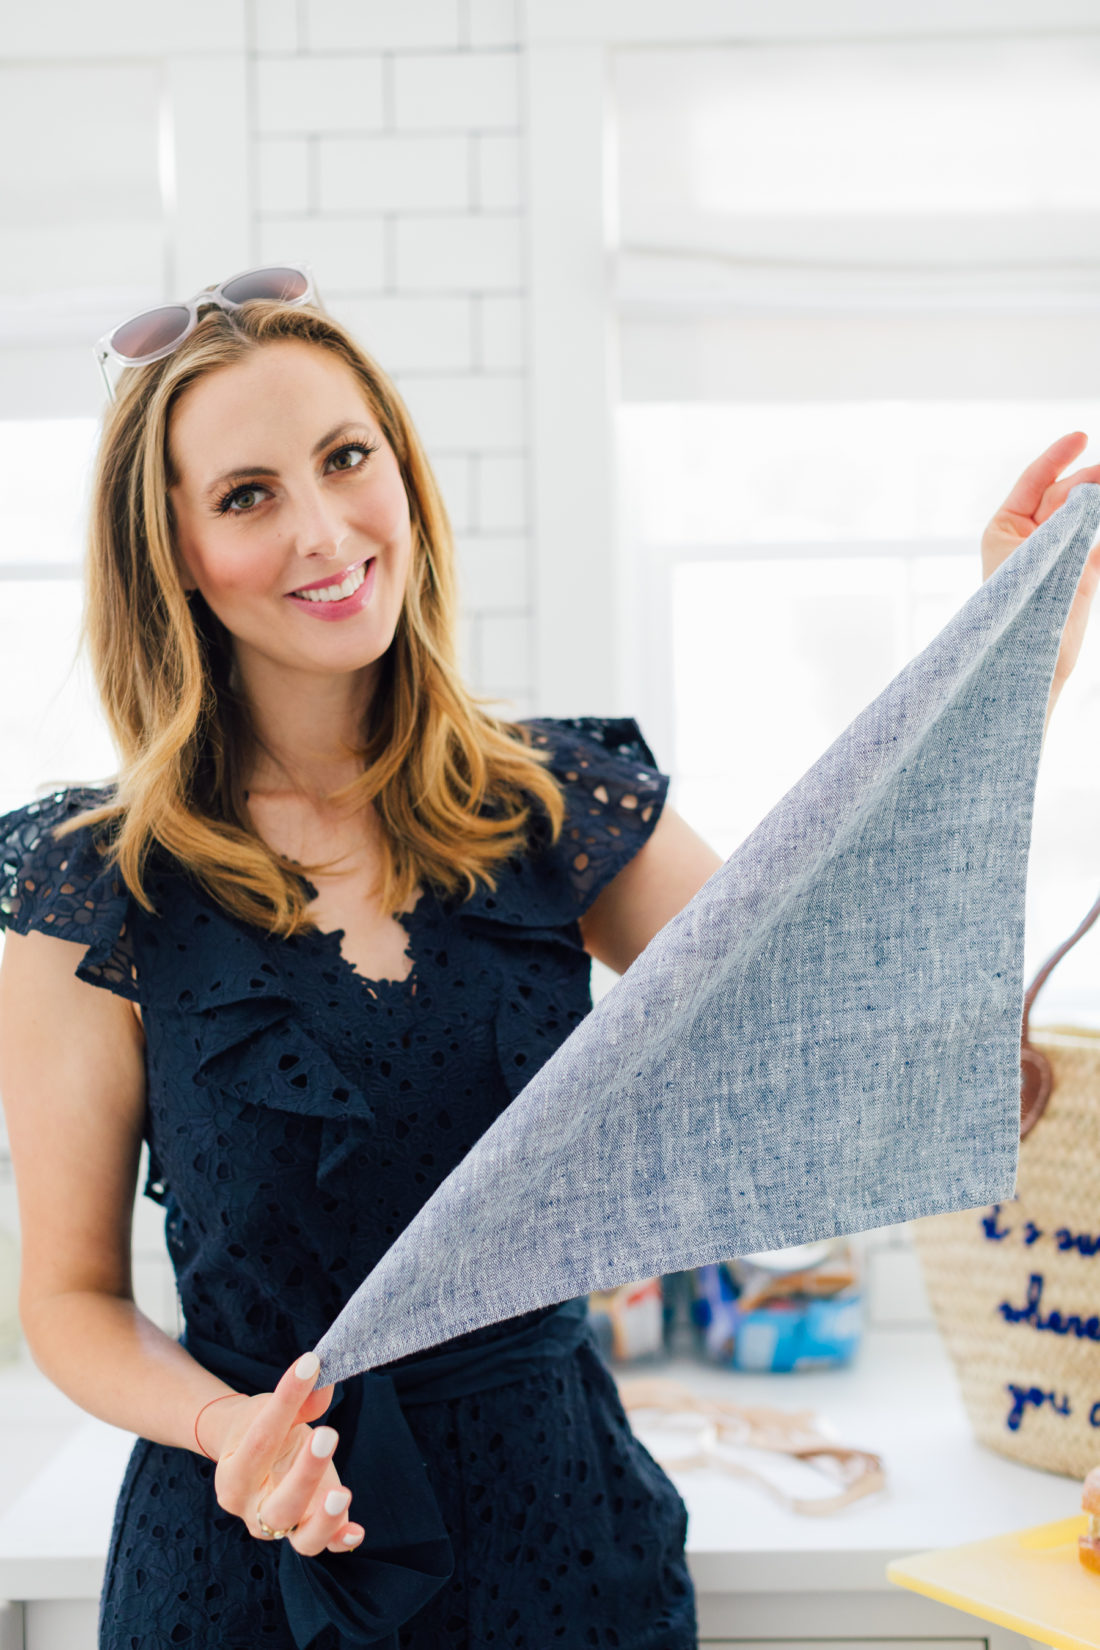 Eva Amurri Martino folds a napkin to wrap a sandwich for a picnic